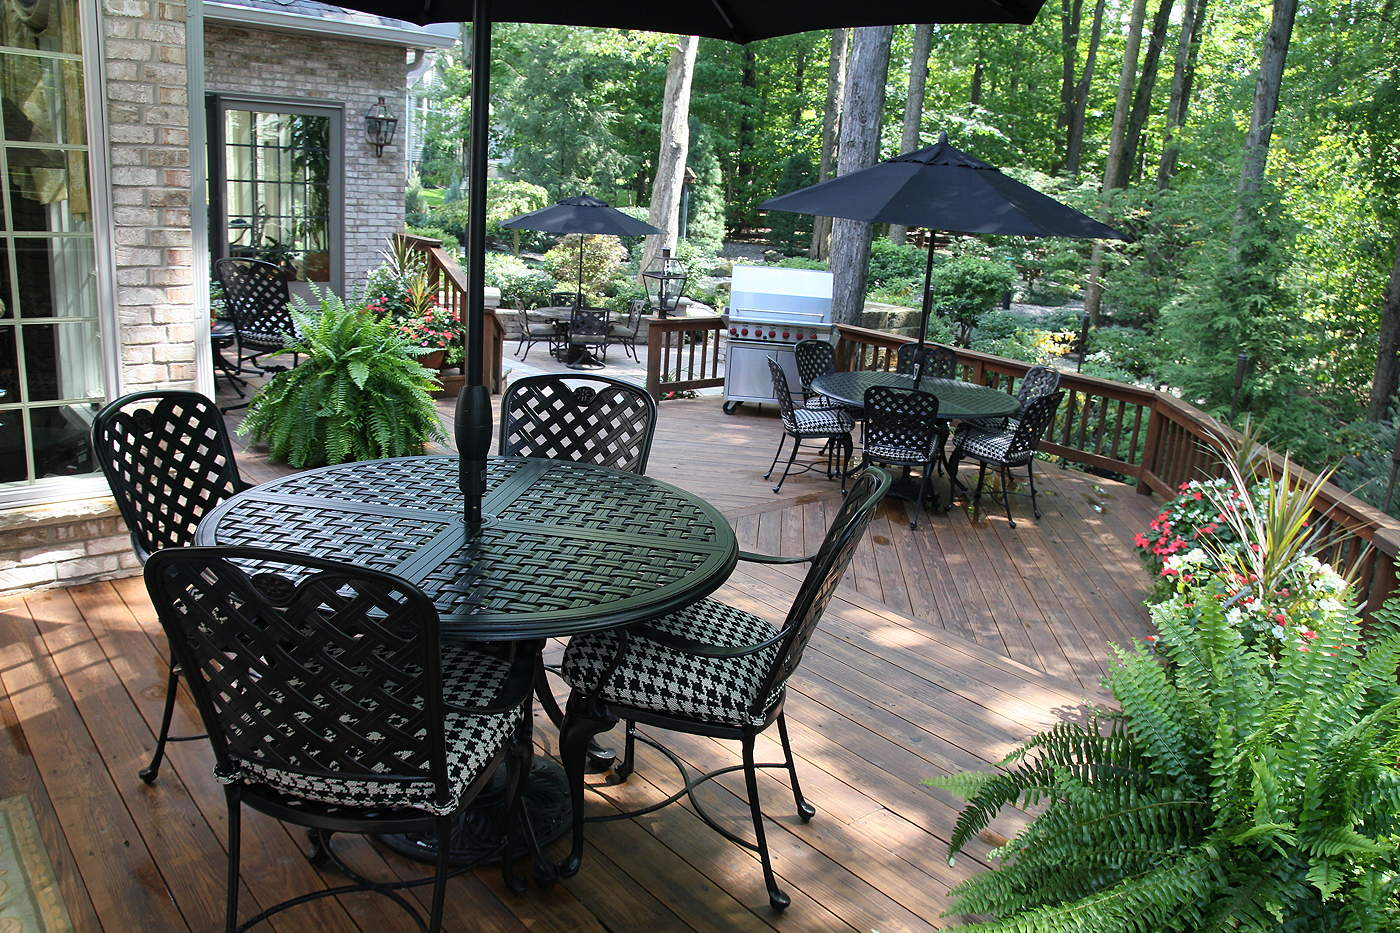 Beauty in bainbridge Home and hearth patio furniture